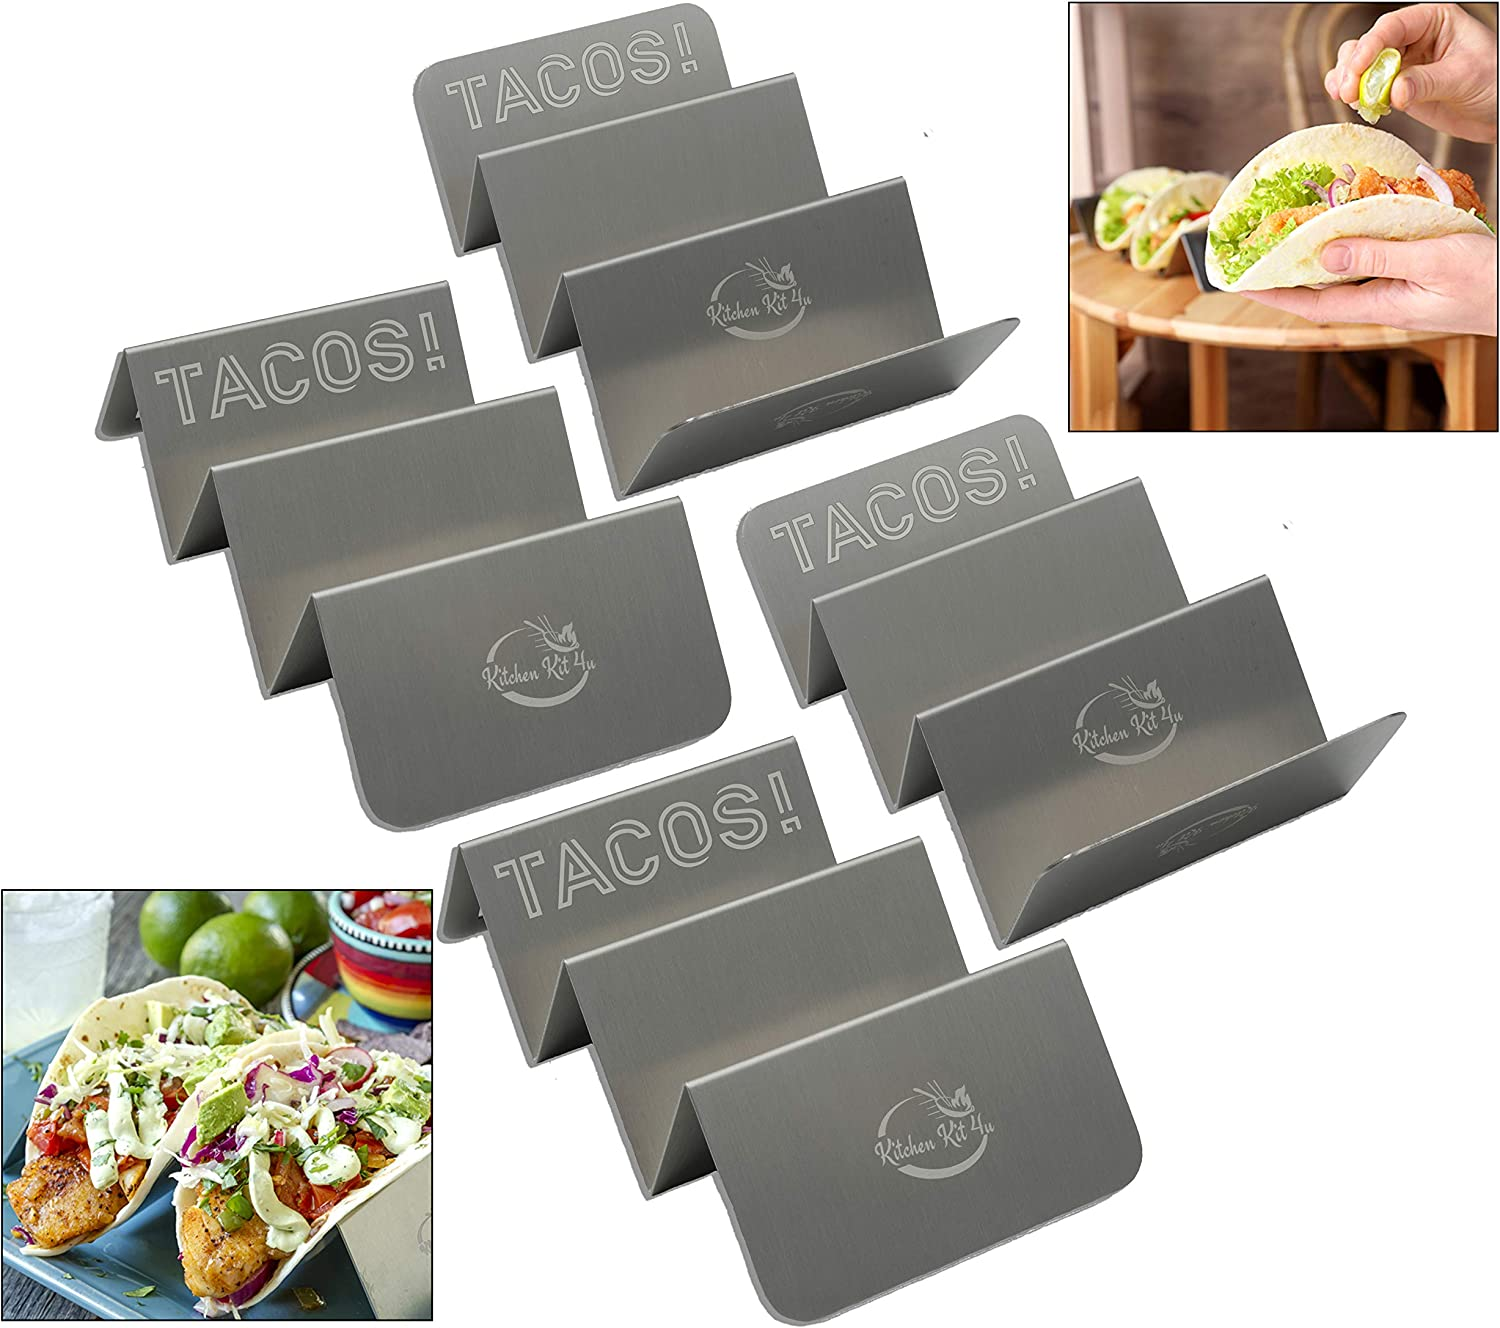 4 Pack Stylish Stainless-Steel 304 - Tray Style Taco Holders for Soft & Hard Shell Tacos & Burrito's (puesto de tacos) | Ideal for Taco Tuesday | Dishwasher, Grill and Oven Safe |